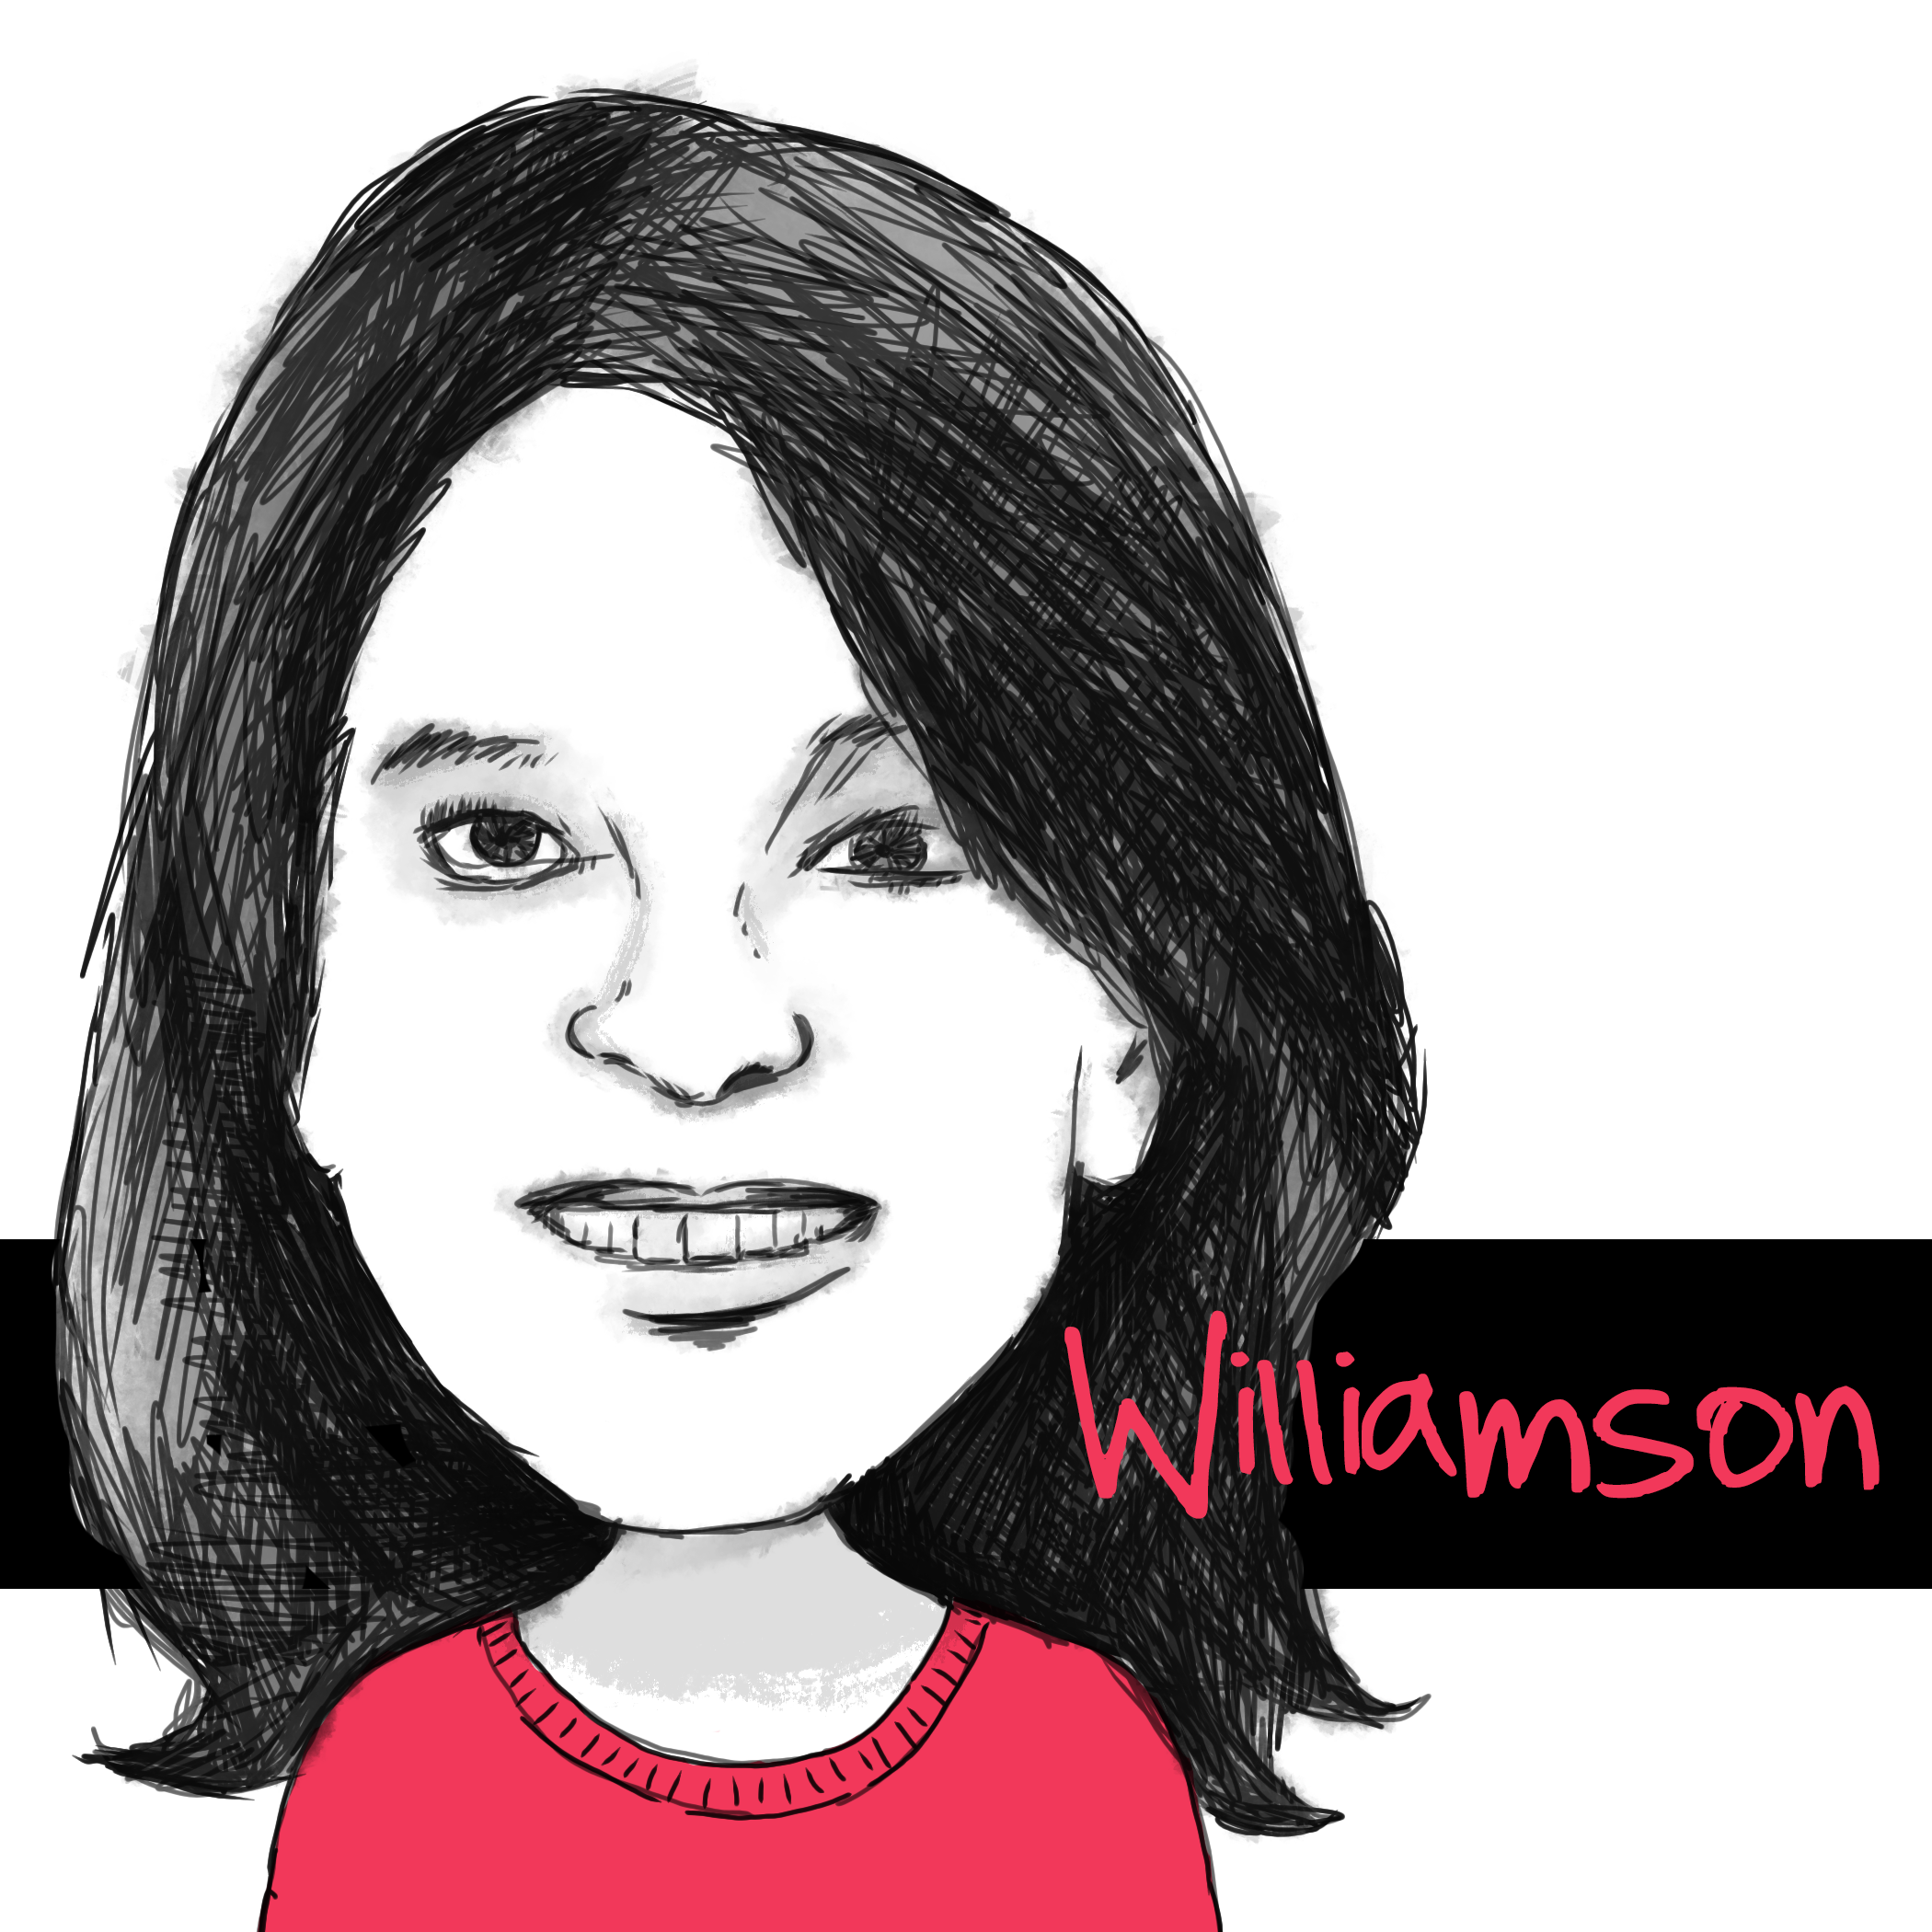 Marianne Williamson - A real conversation about America - https://www.marianne2020.com